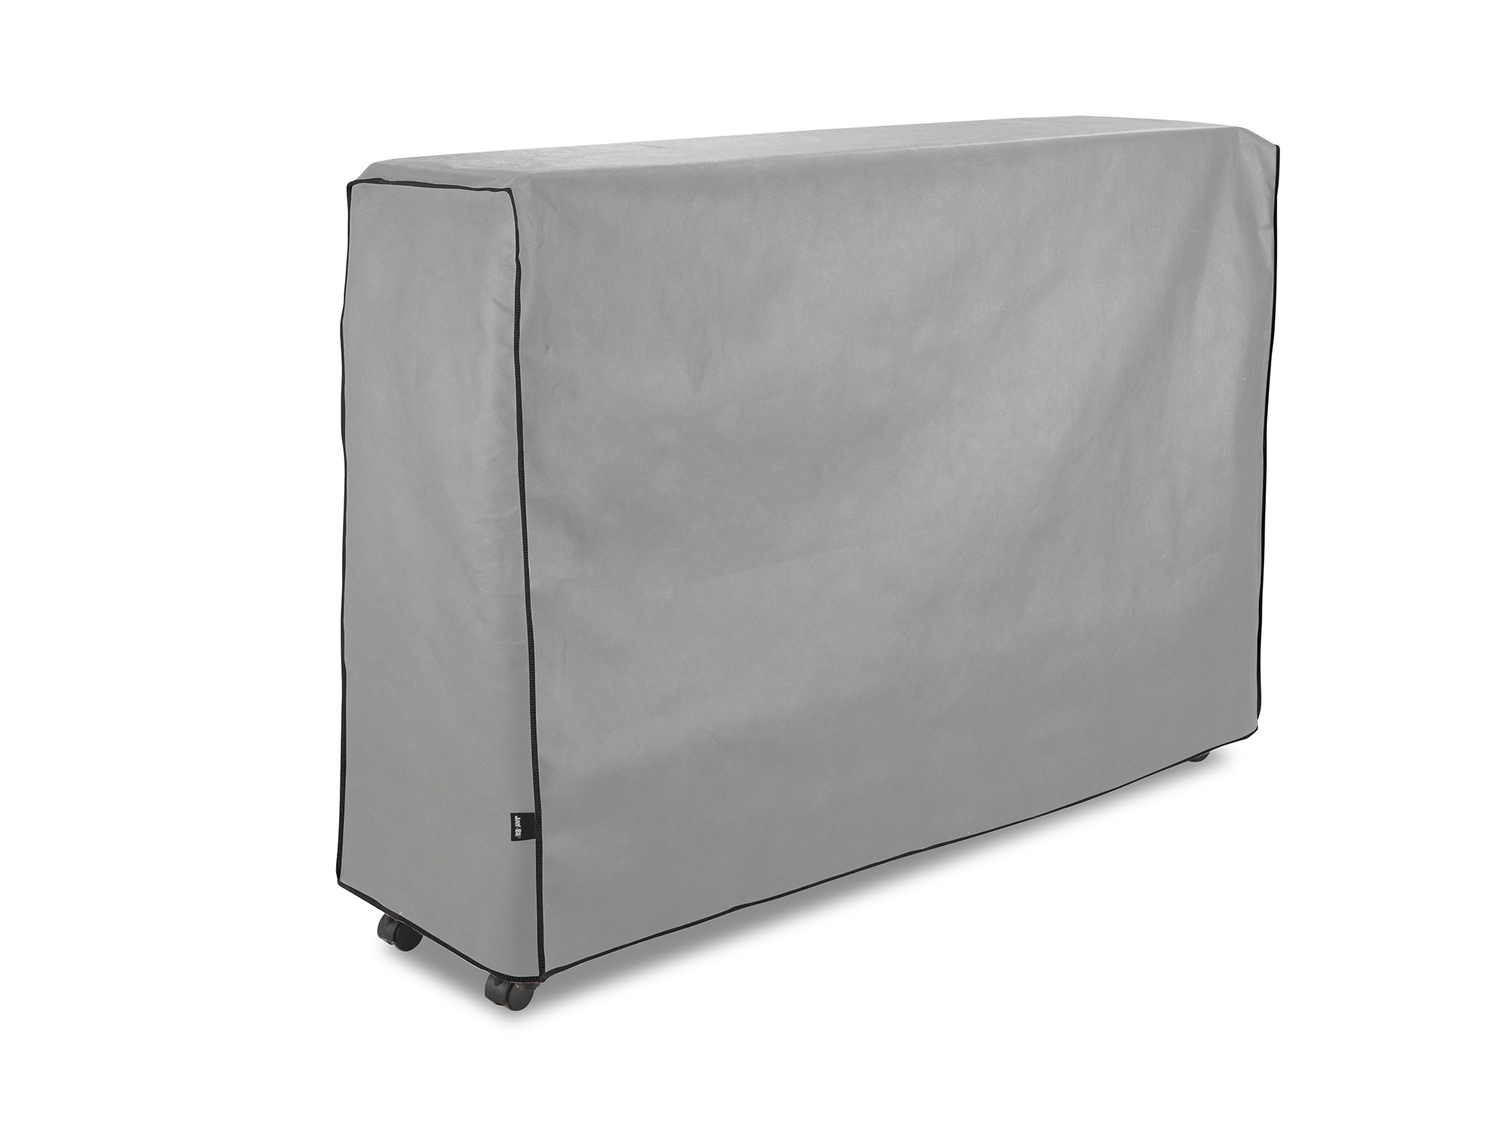 Jay-Be Storage Cover For Supreme Folding Beds - double size